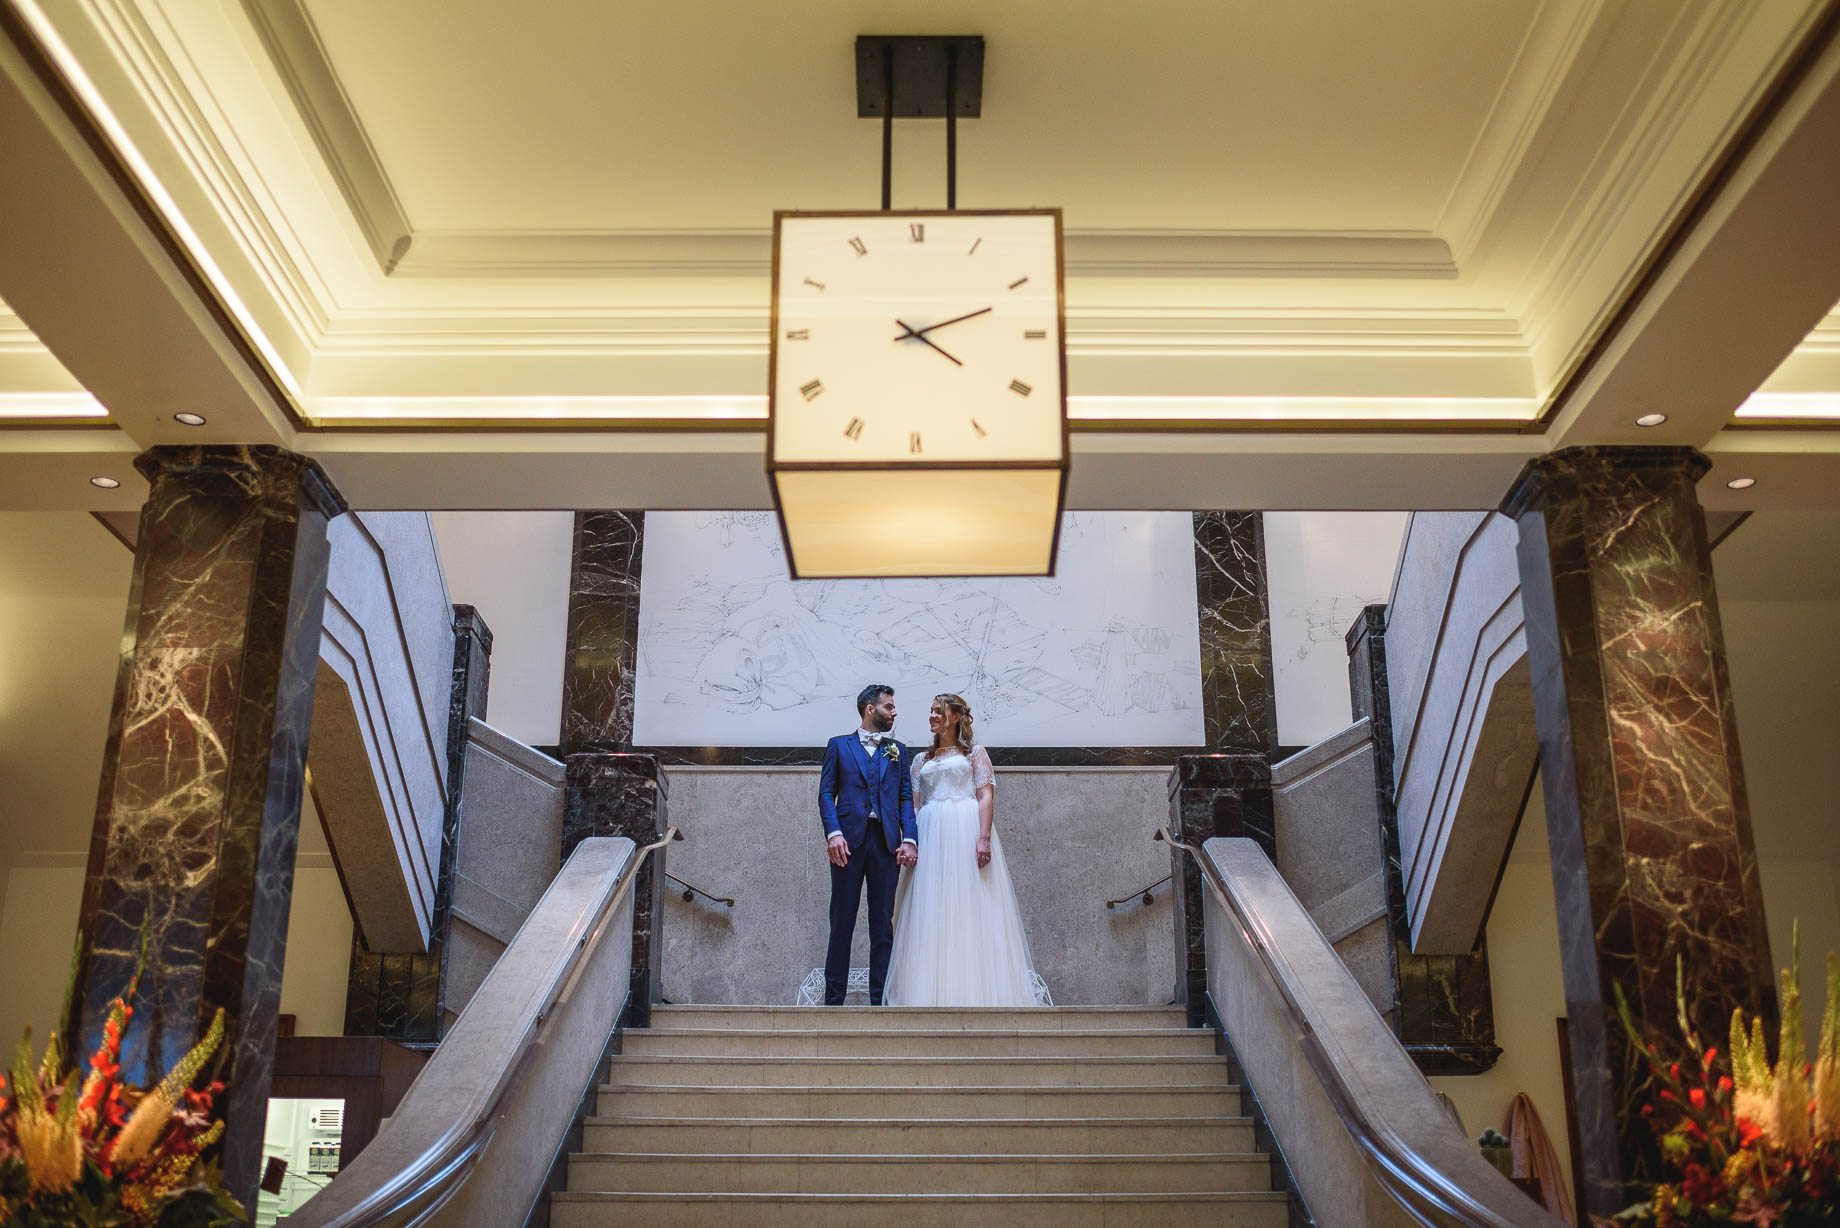 London Wedding Photography - Guy Collier Photography - LJ + Russell (91 of 155)